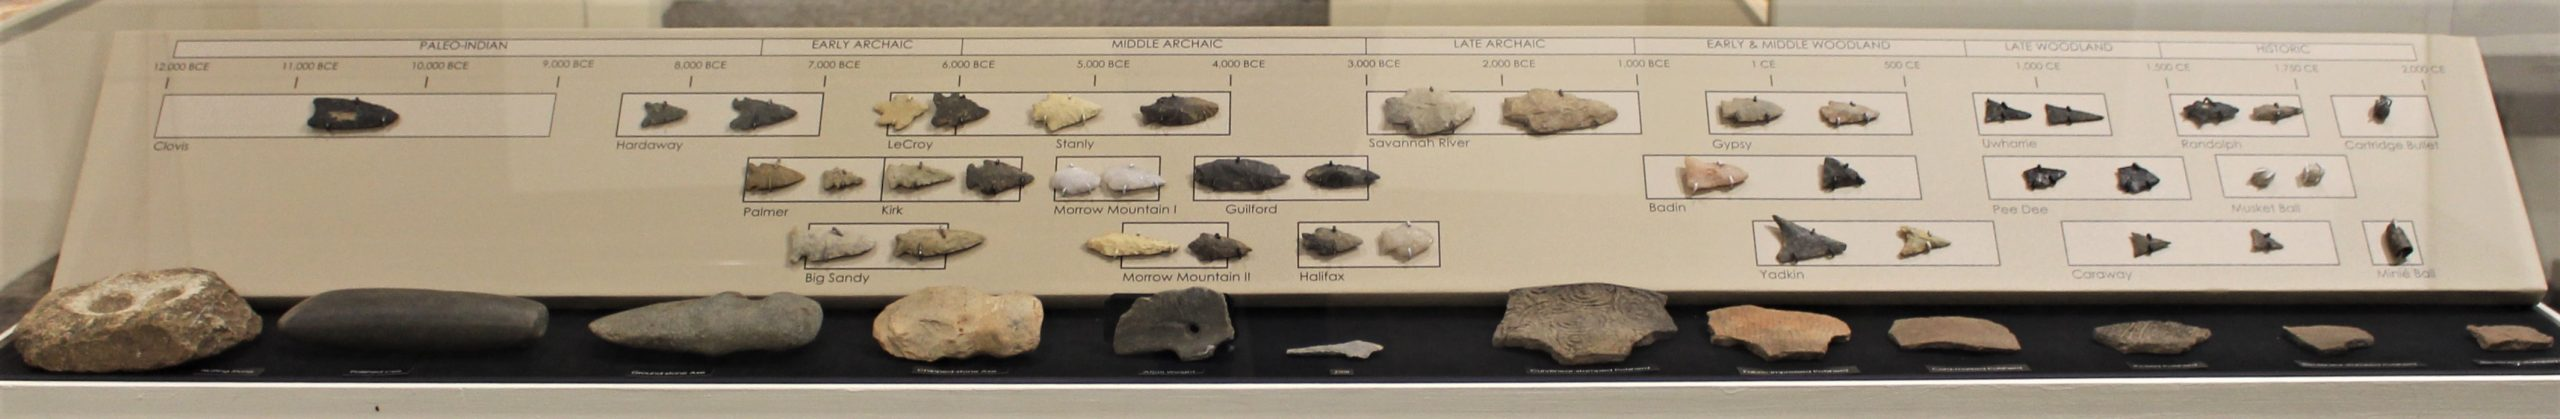 North Carolina projectile point timeline